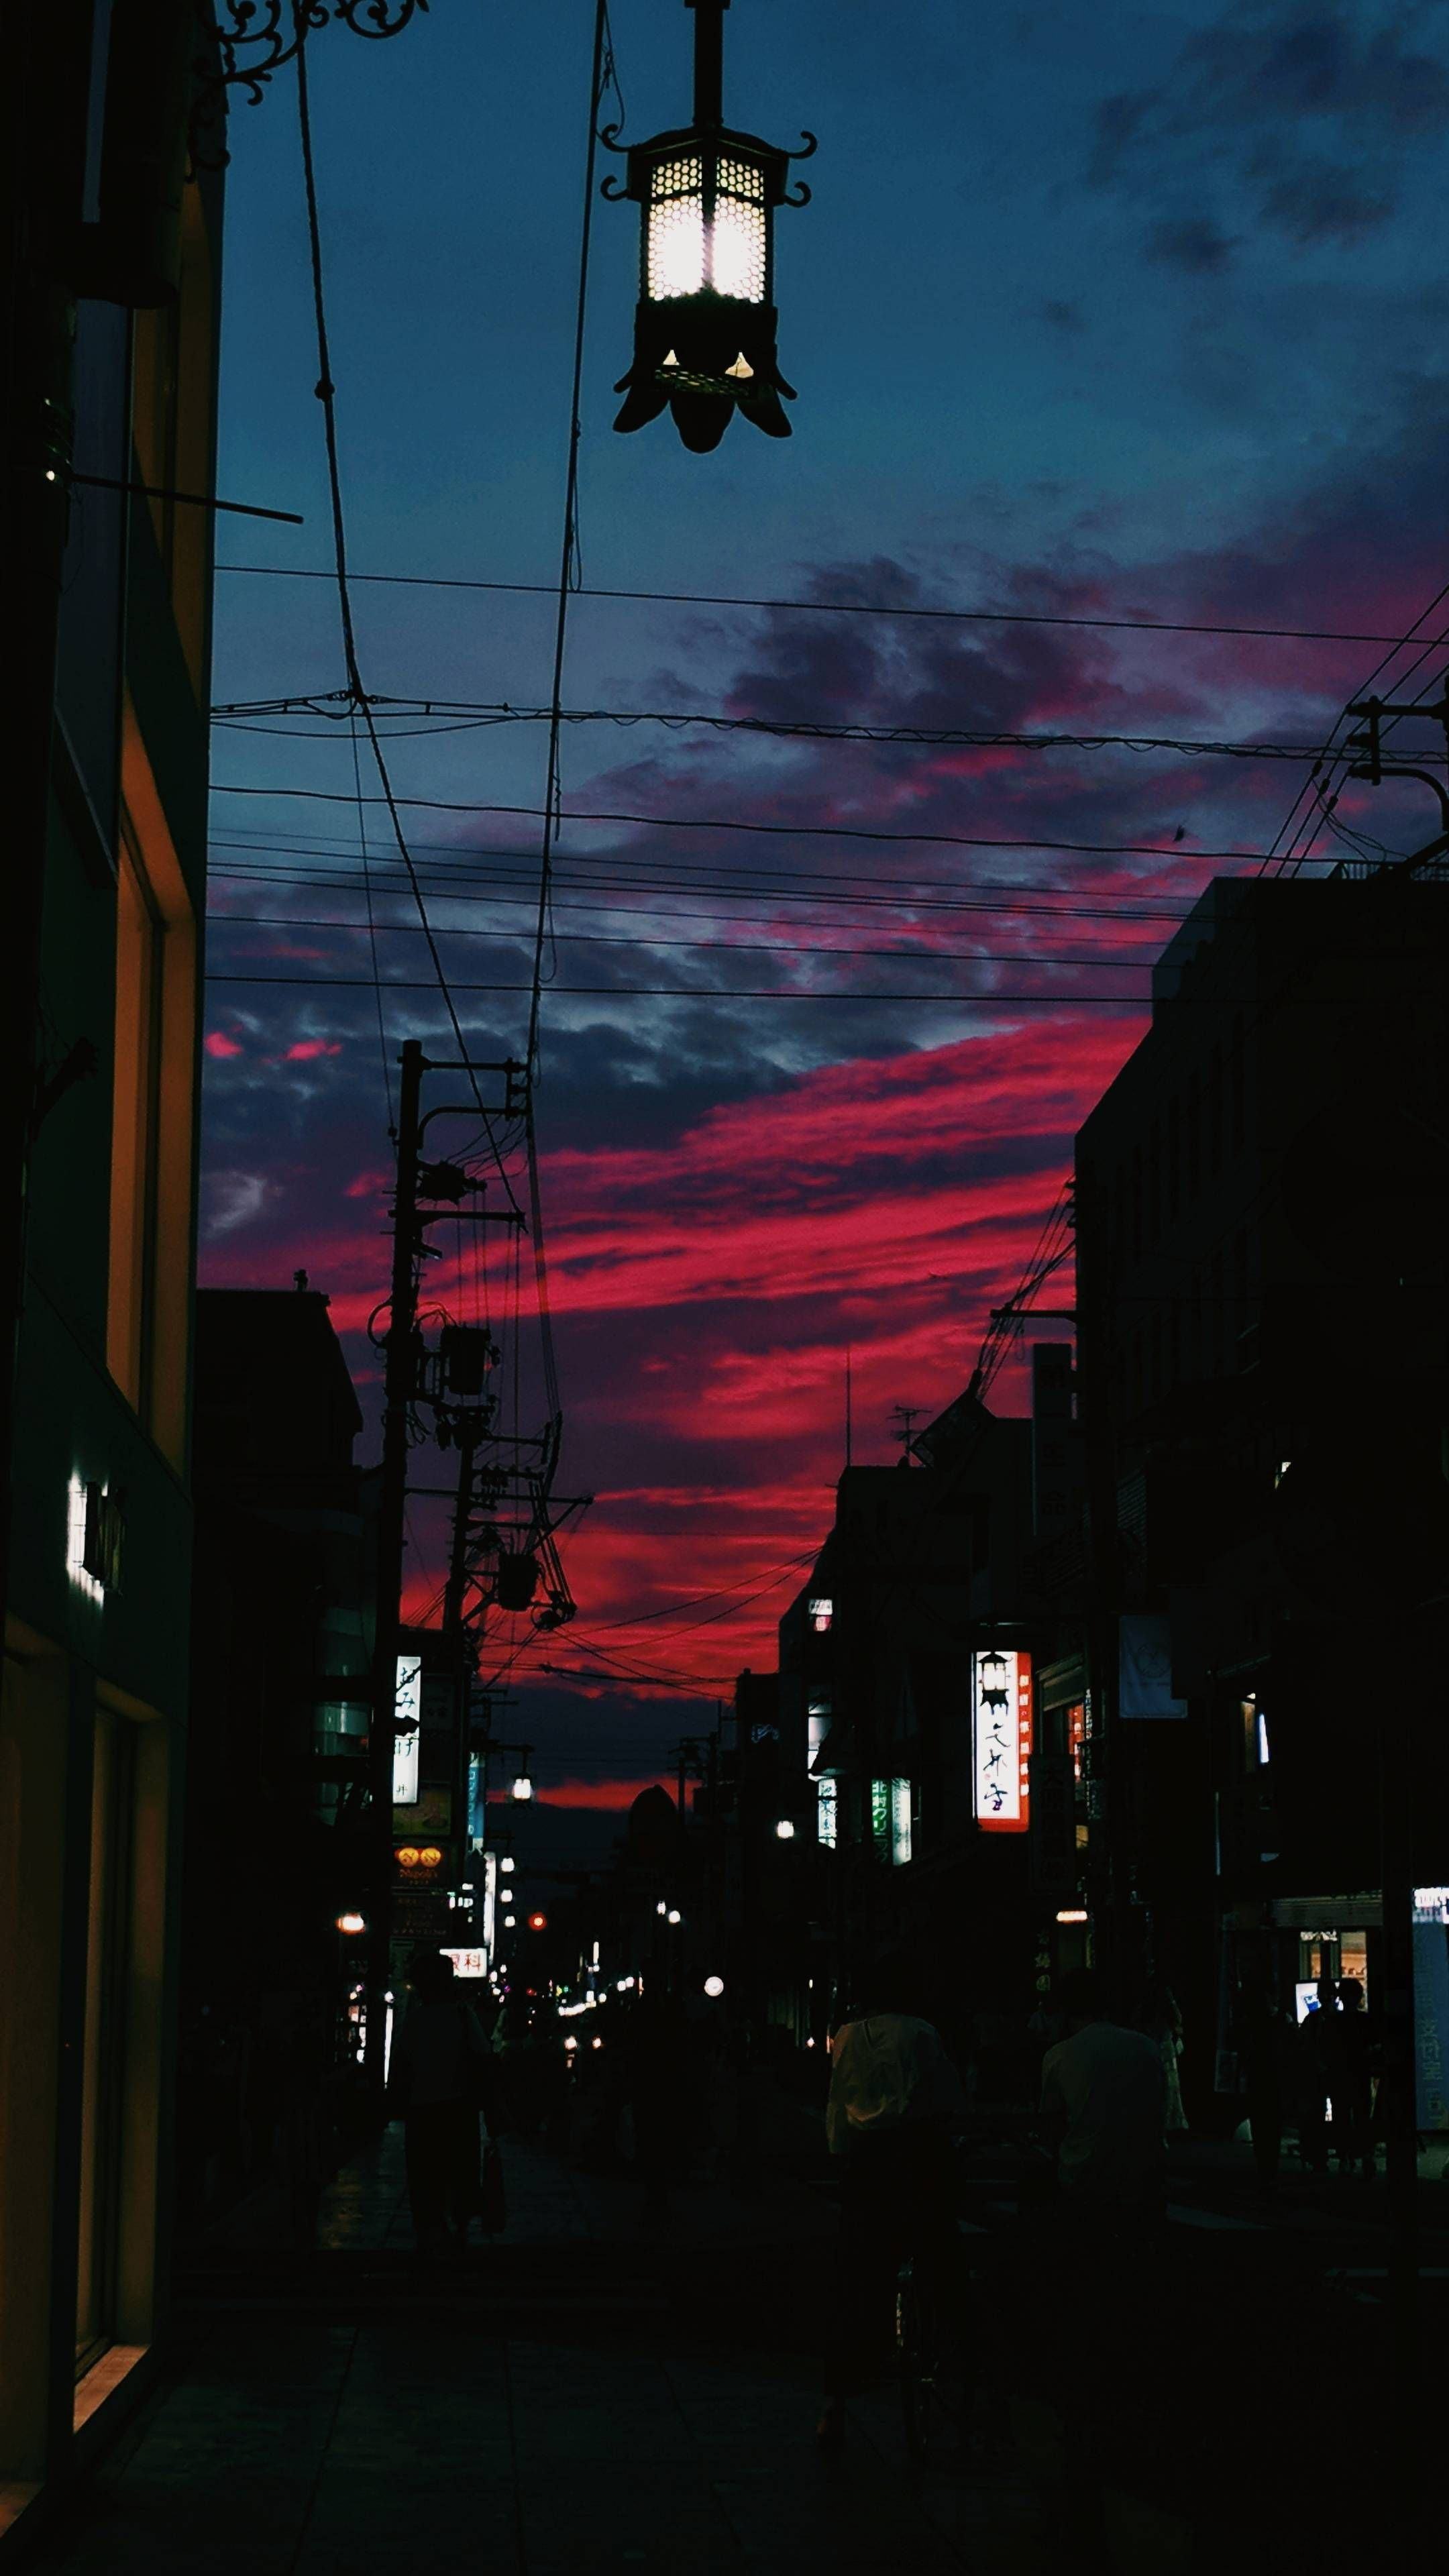 OC][2160x3840] Todays sunset was crazy in Nara Japan con 2160x3840